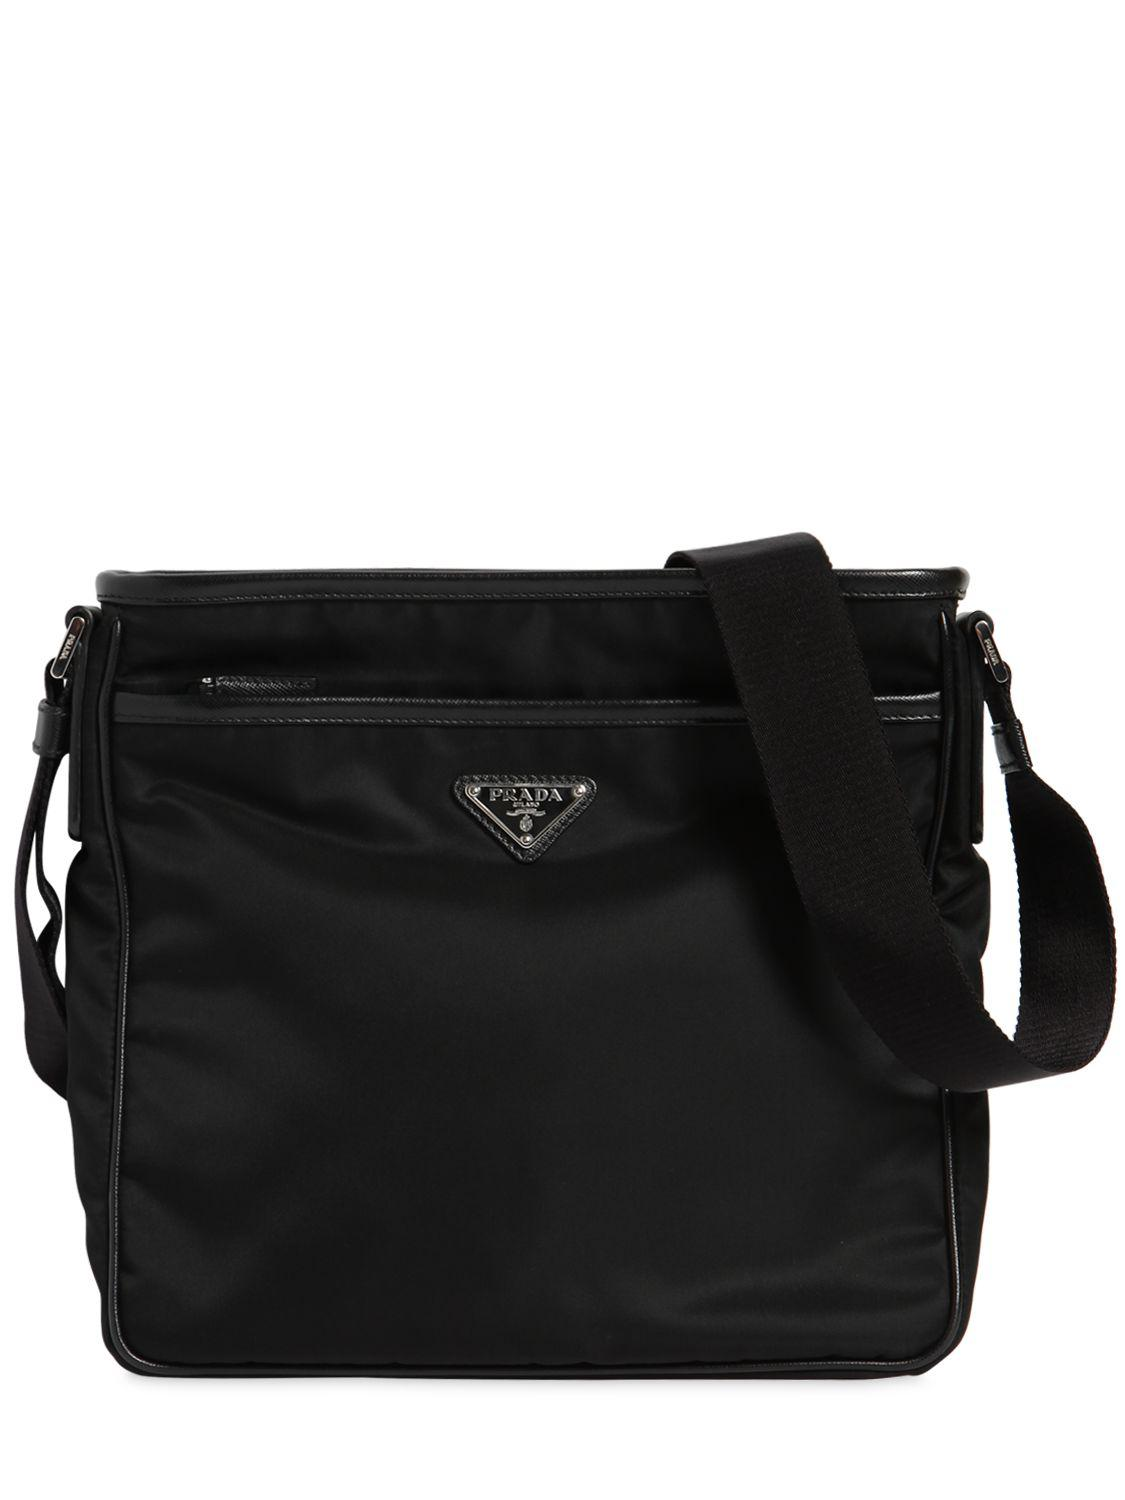 4ecb8f05298d7 Prada - Black Nylon Crossbody Bag W  Leather Trim for Men - Lyst. View  fullscreen